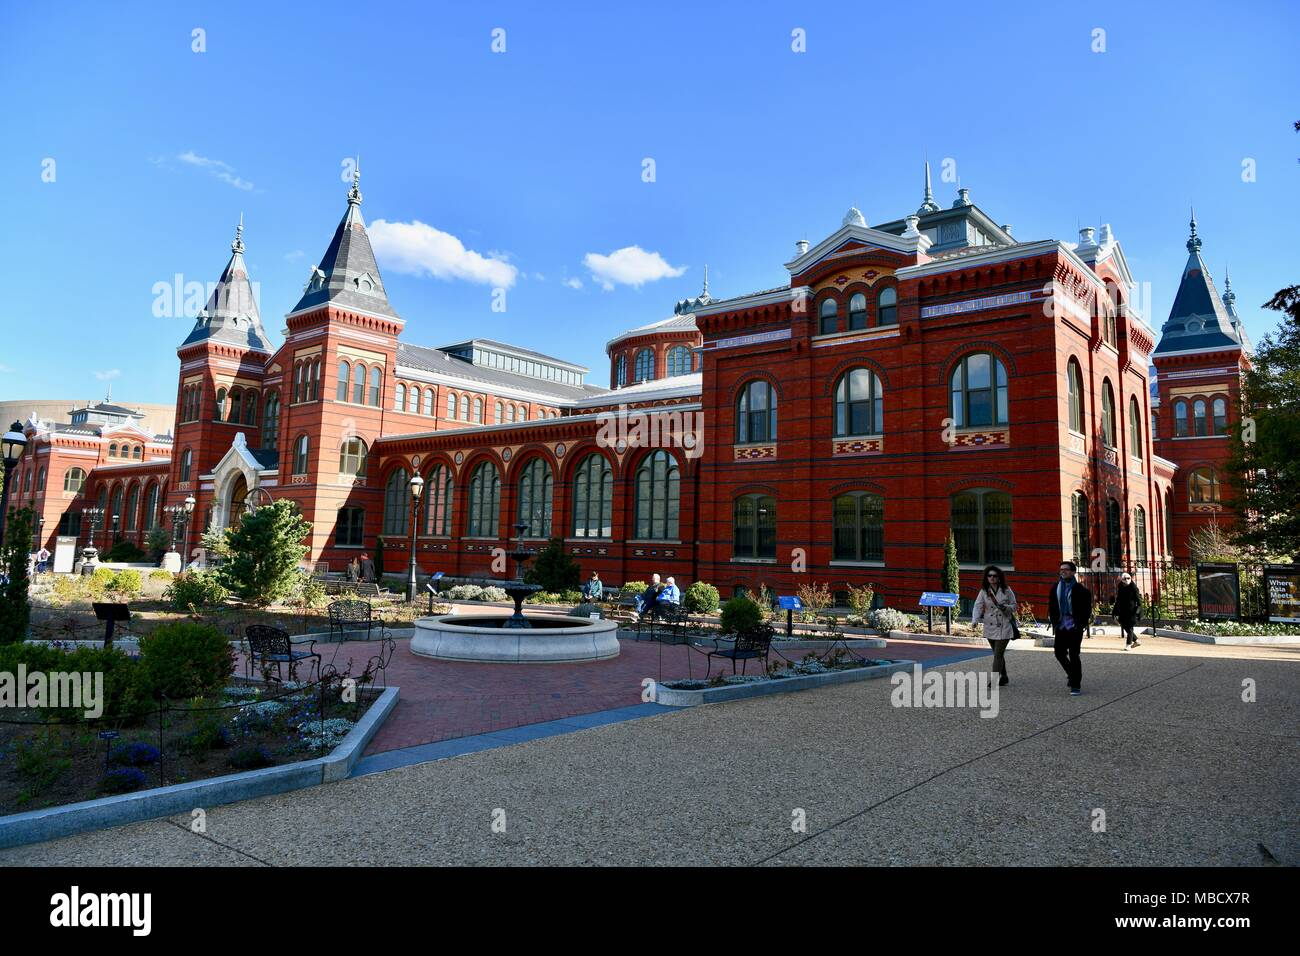 The Arts and Industries Building, part of the Smithsonian Institution in Washington DC, USA - Stock Image